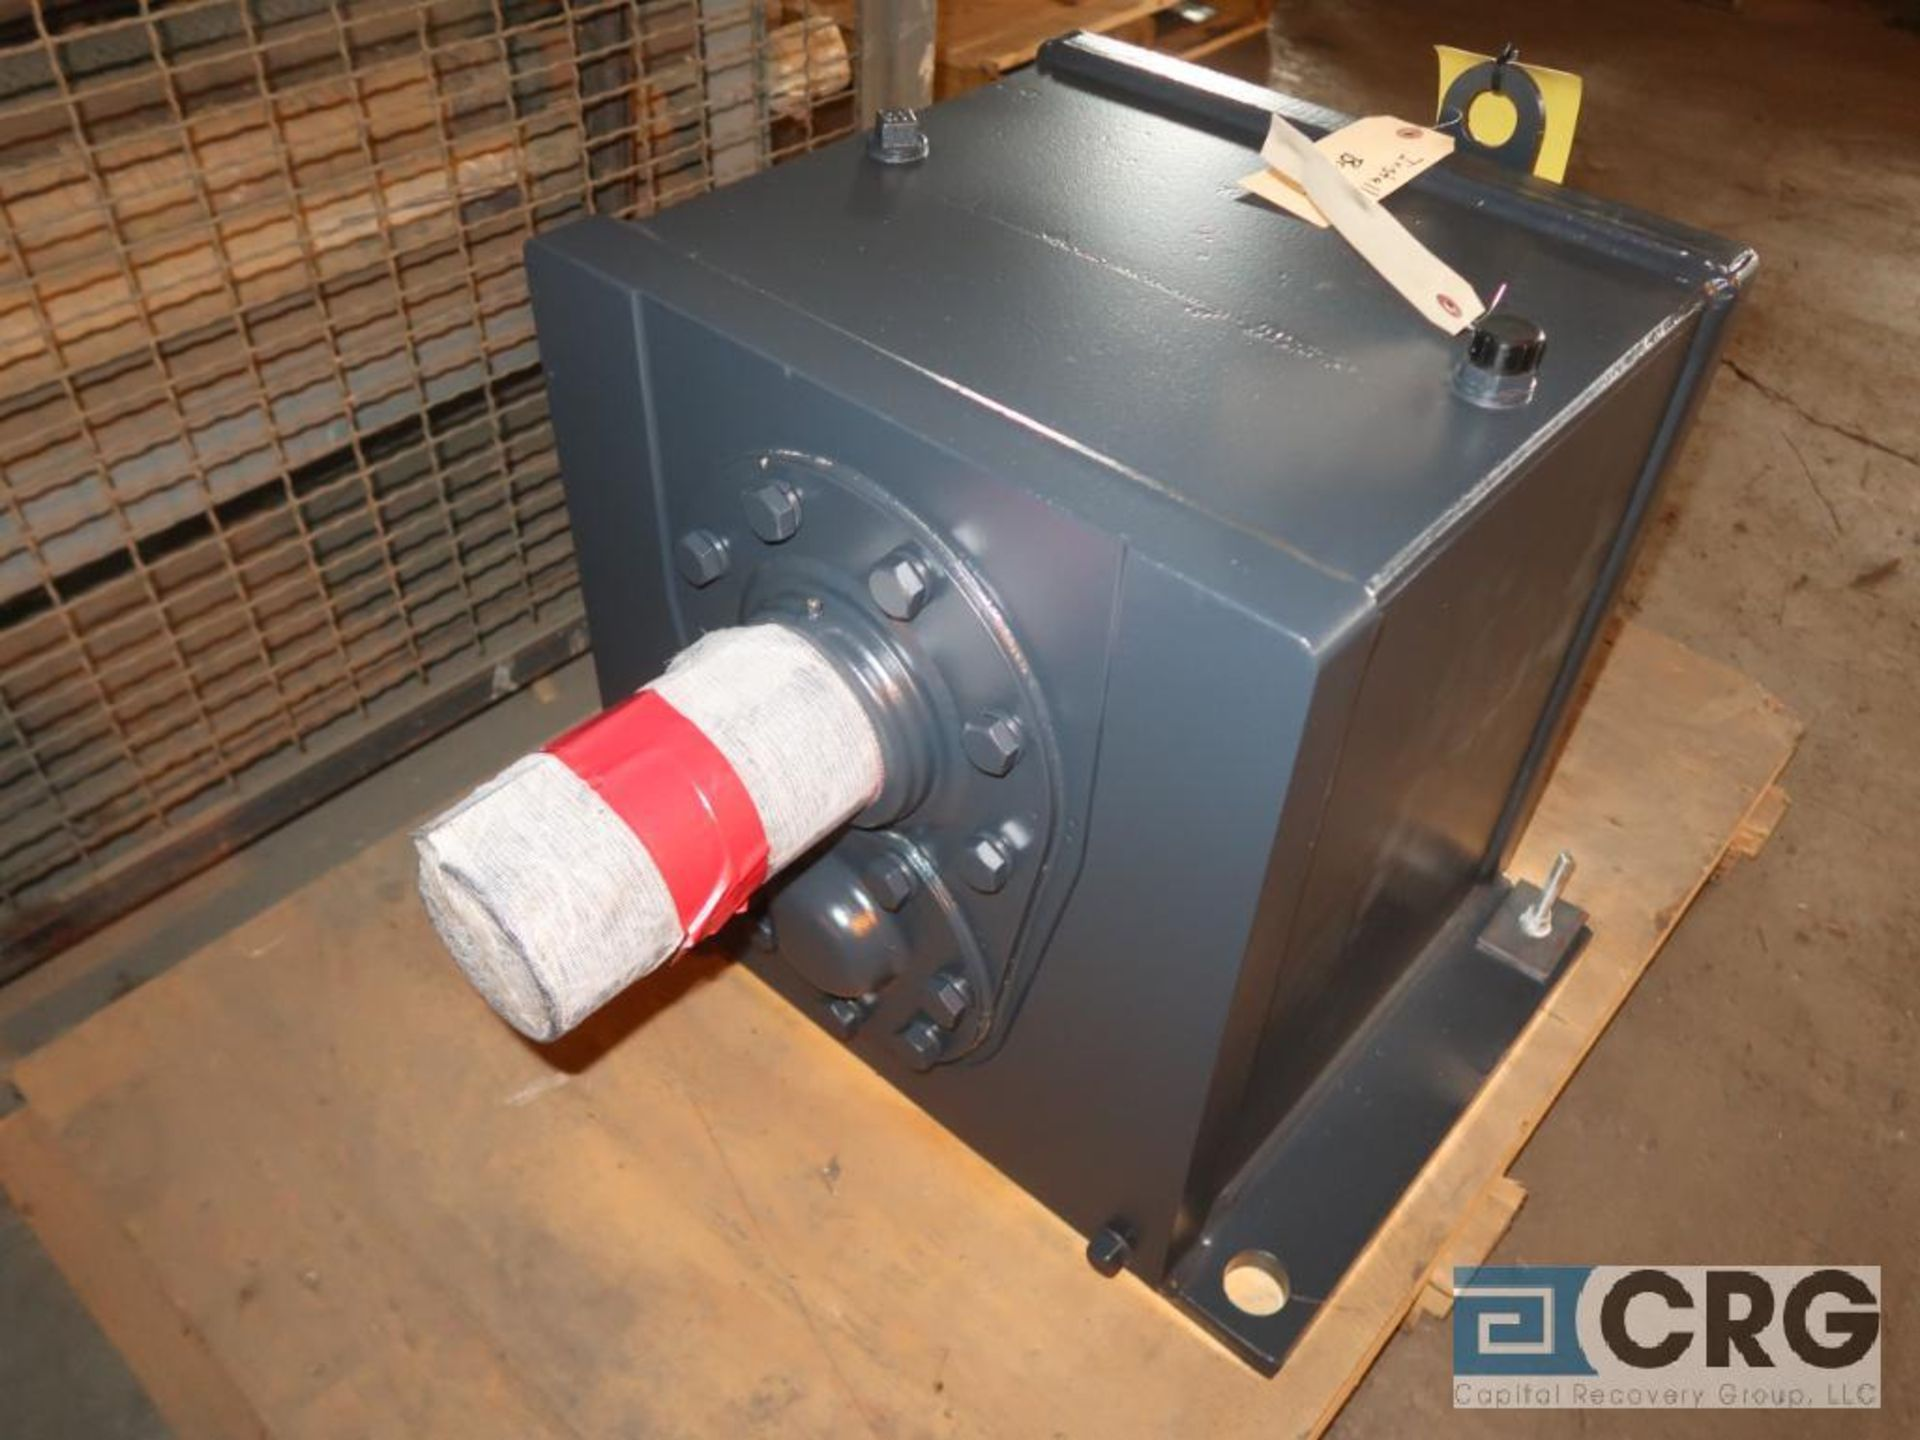 Falk 1080FZ34 gear drive, ratio-48.11, input RPM 1,750, output RPM 36, service rate HP. 25, s/n - Image 2 of 3